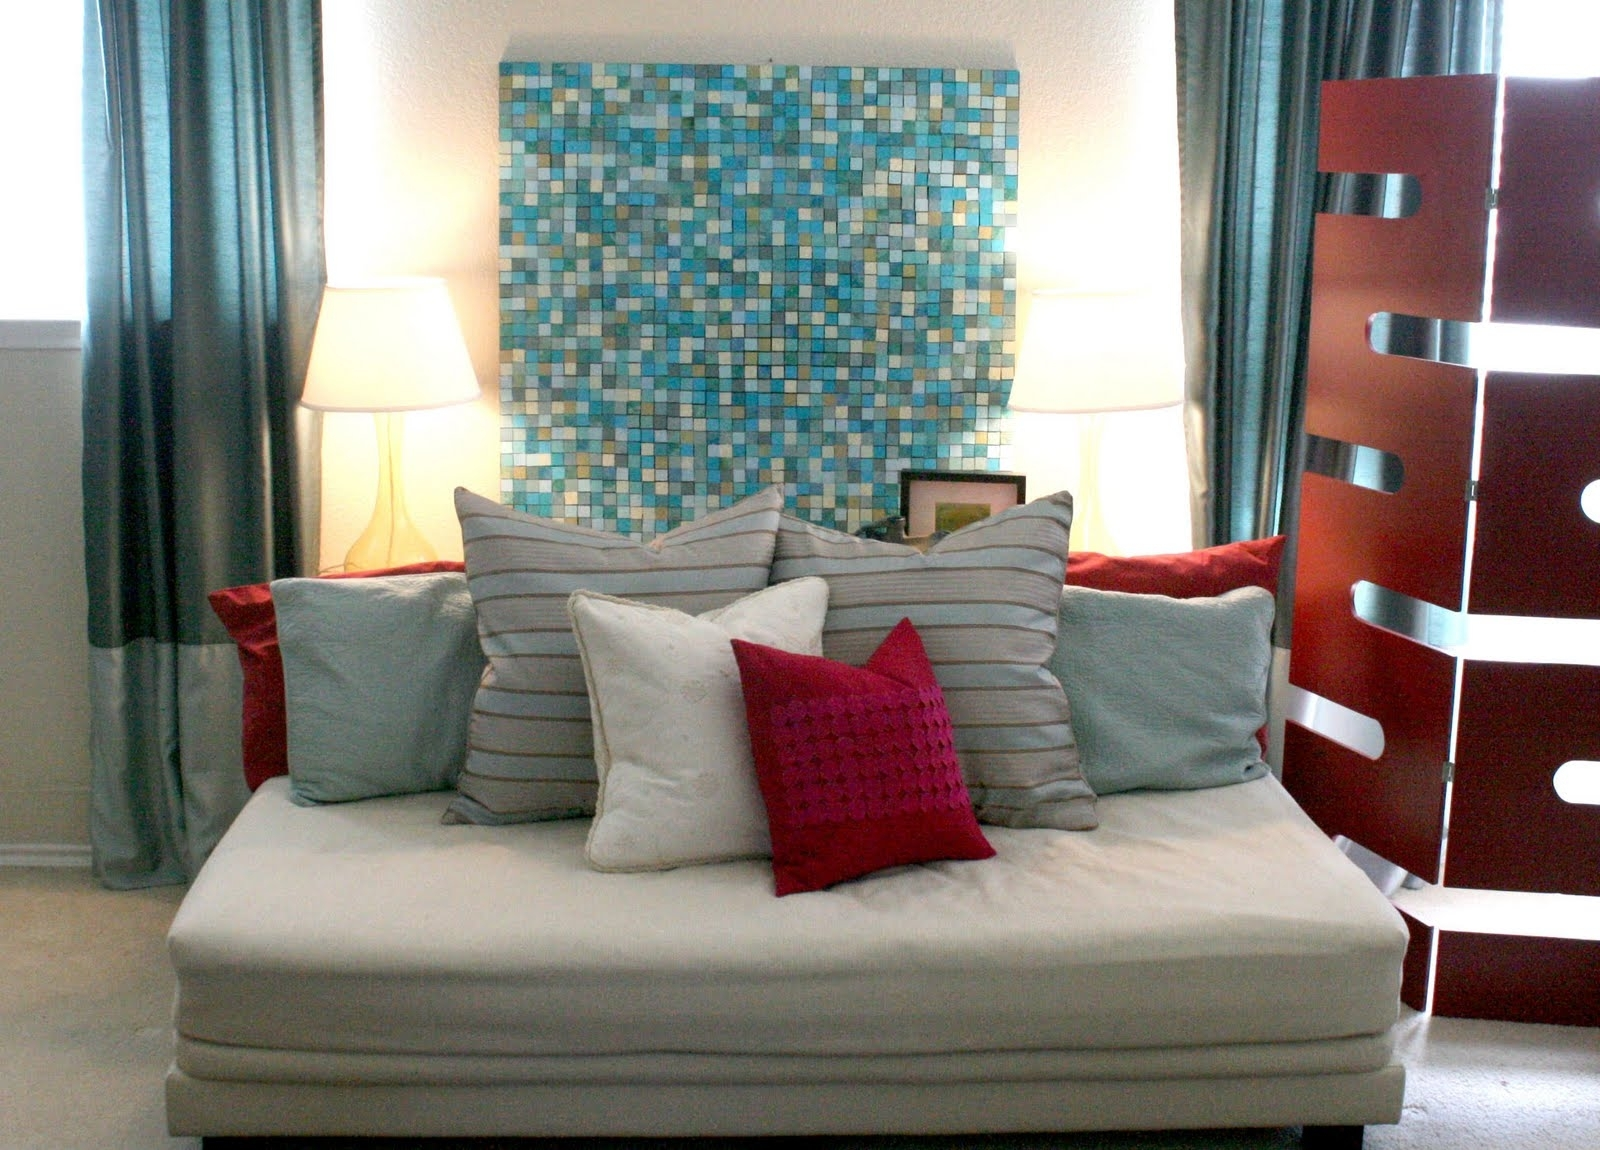 Ideas: Comfortable White Sofa Bed With Cushions And Nice Mosaic Pertaining To Latest Jcpenney Canvas Wall Art (View 4 of 15)